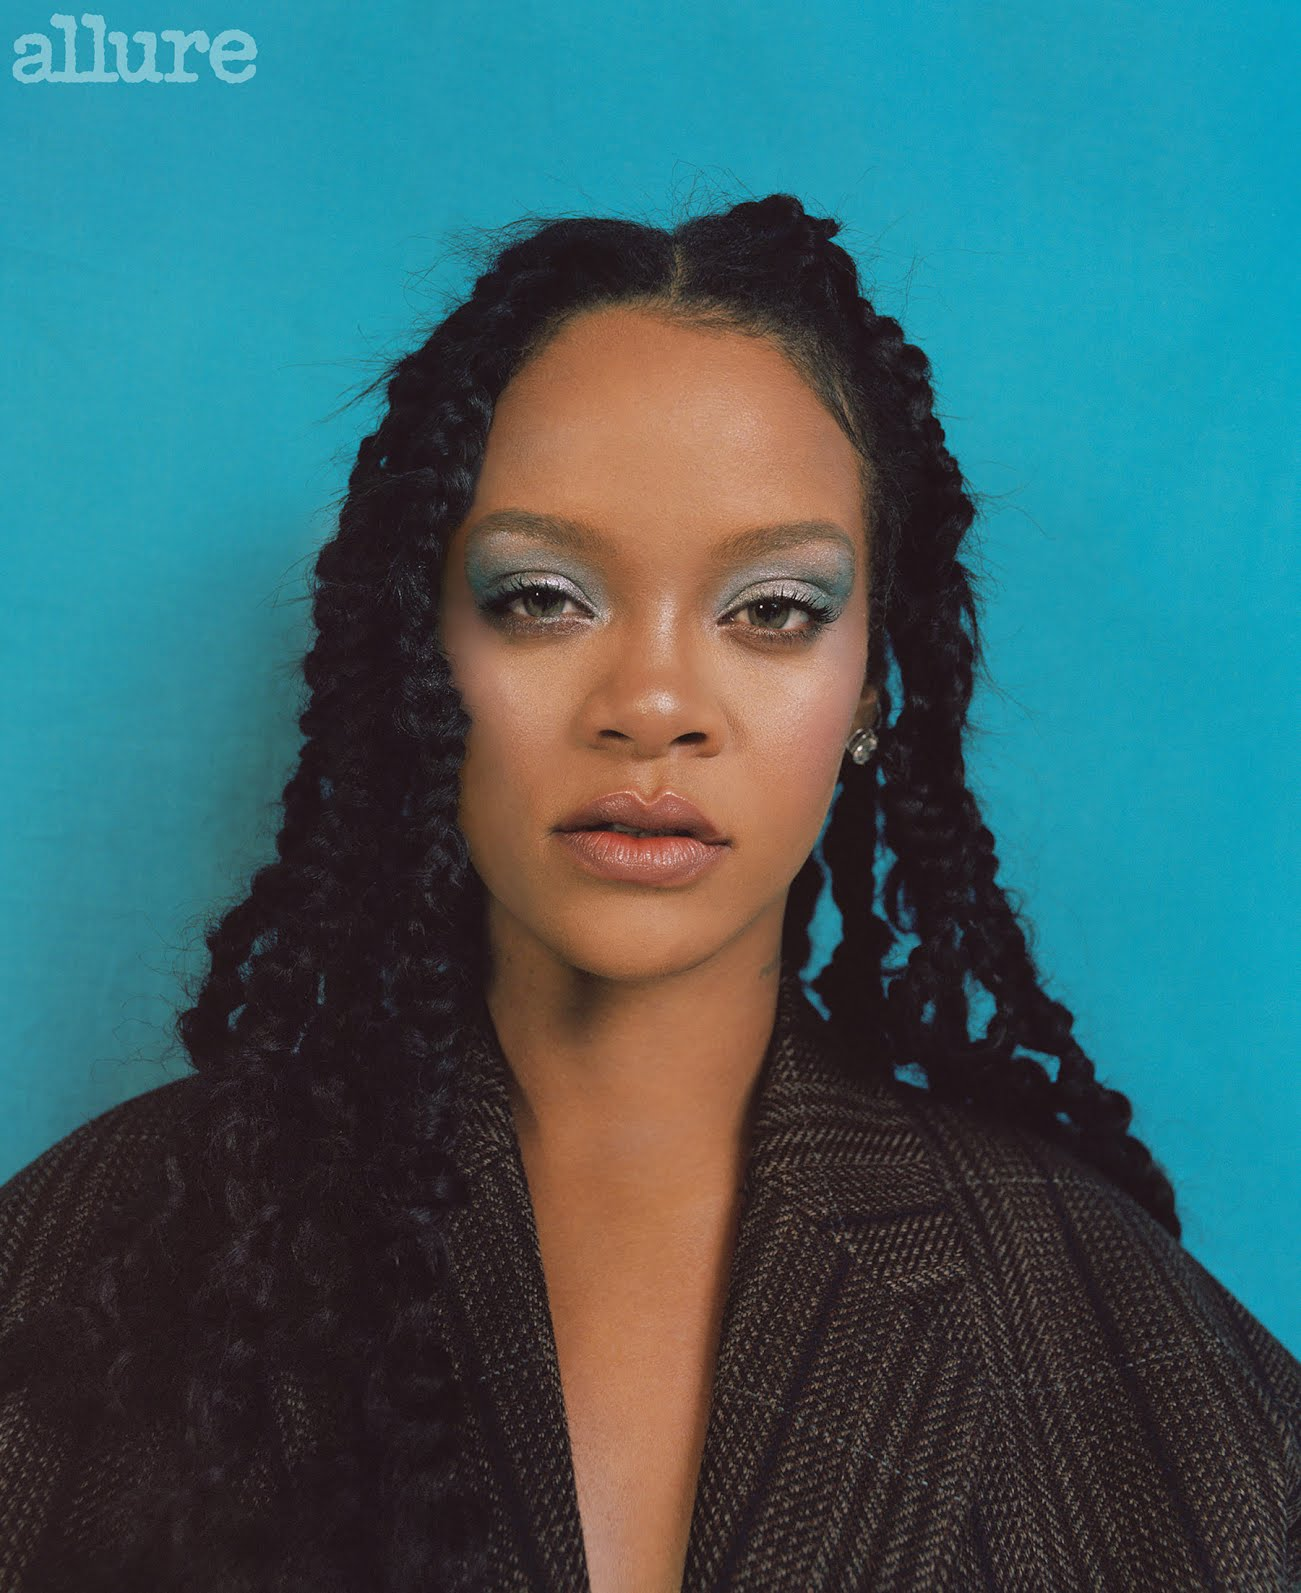 Rihanna Lights Up the Cover of Allure's Best of Beauty Issue